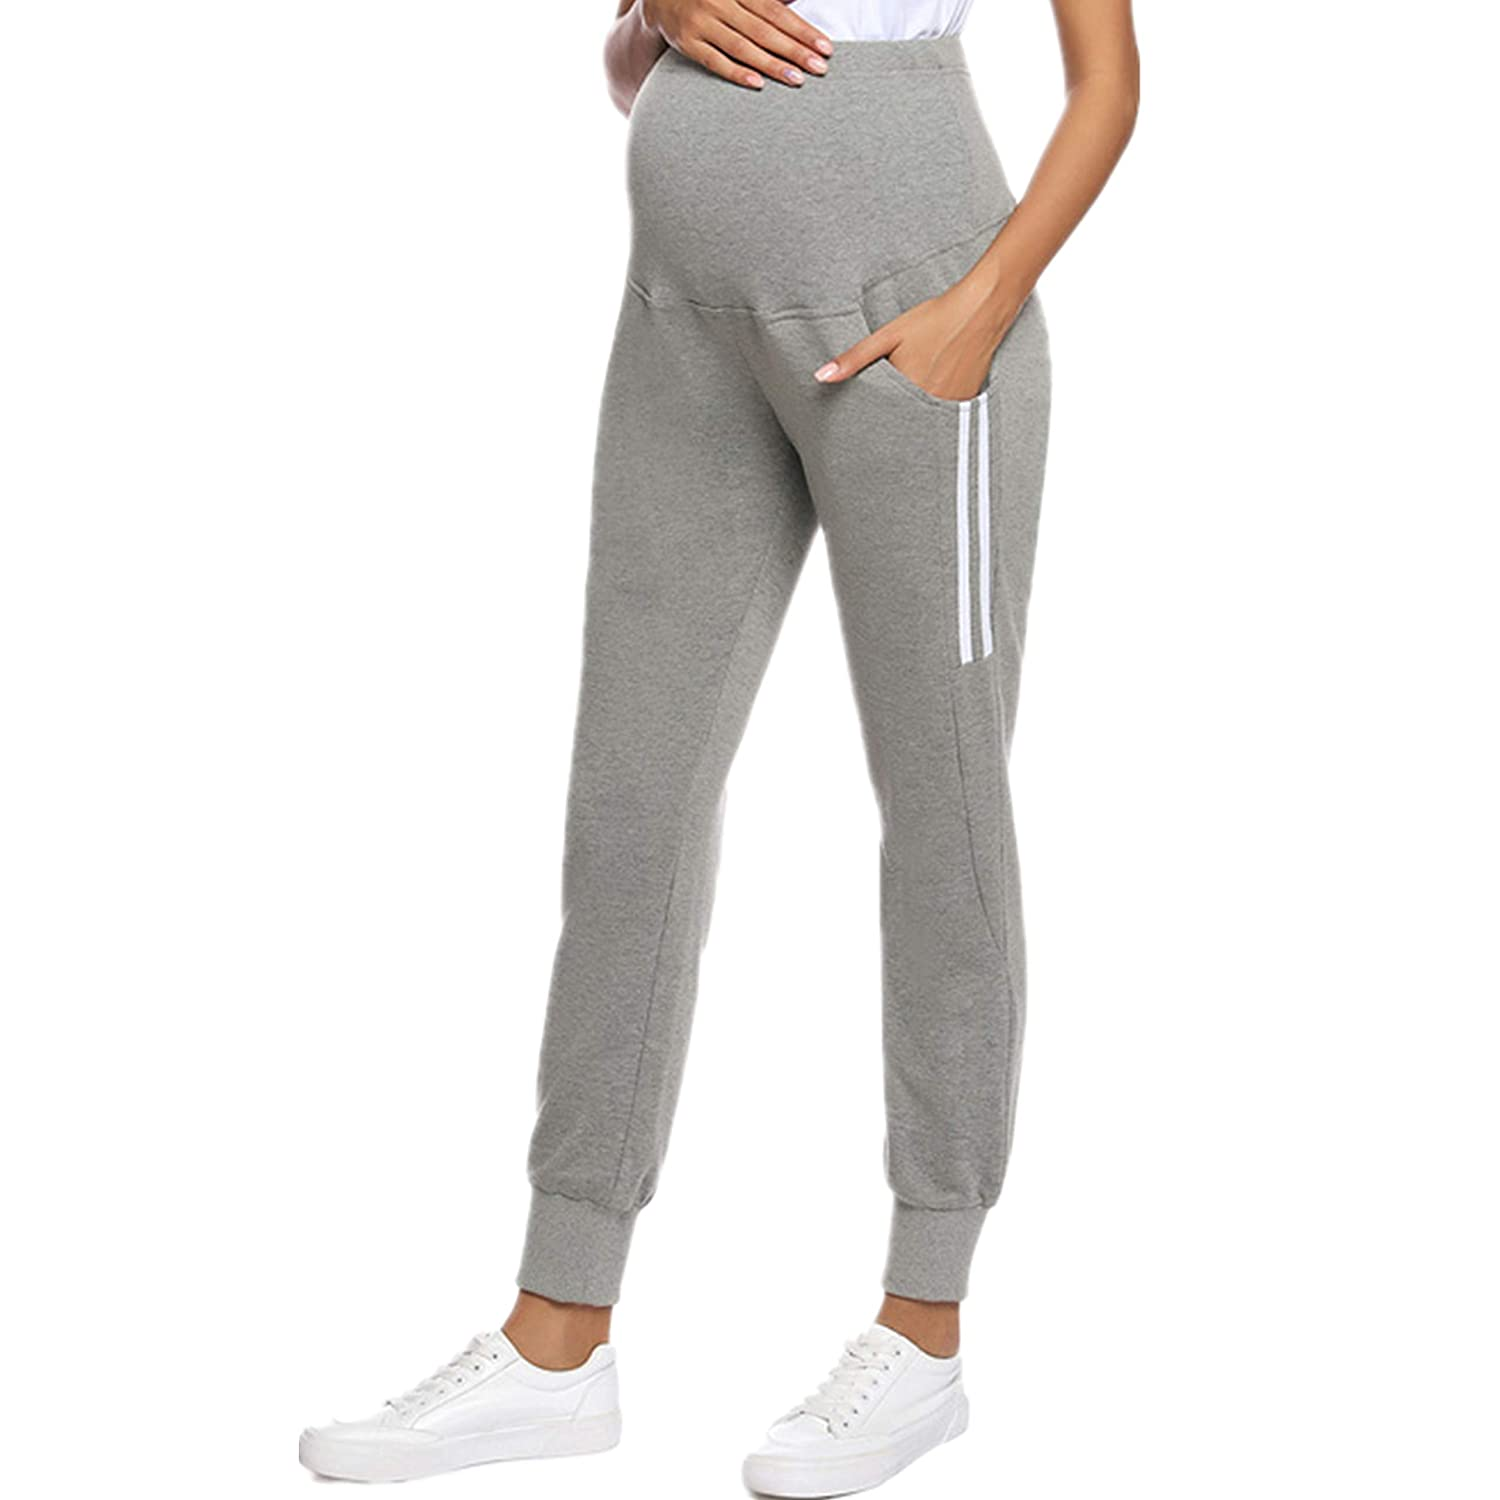 Maacie Womens Maternity Striped Side Jogger Sweatpants with Pockets